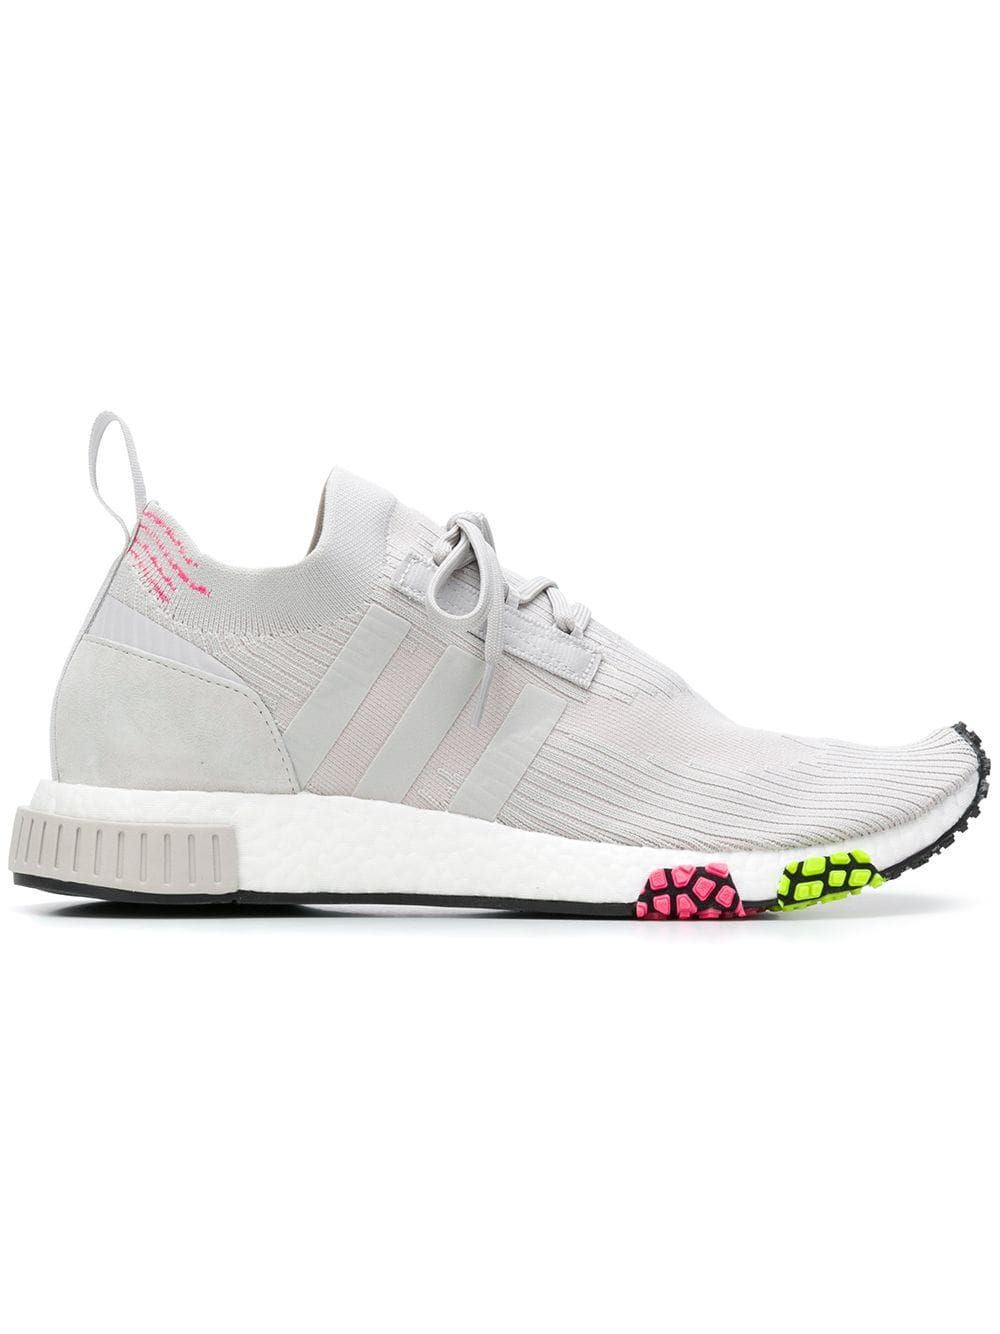 Adidas NMD Racer sneakers Grey Produkter i 2019    Adidas NMD Racer sneakers Grå   title=  6c513765fc94e9e7077907733e8961cc          Products in 2019